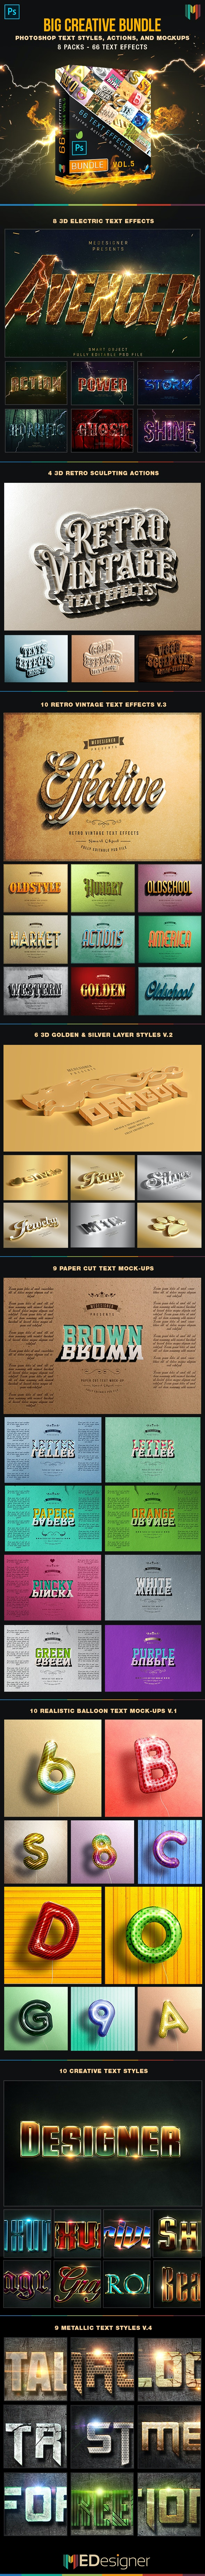 66 Creative Text Effects Bundle 5 - Text Effects Actions